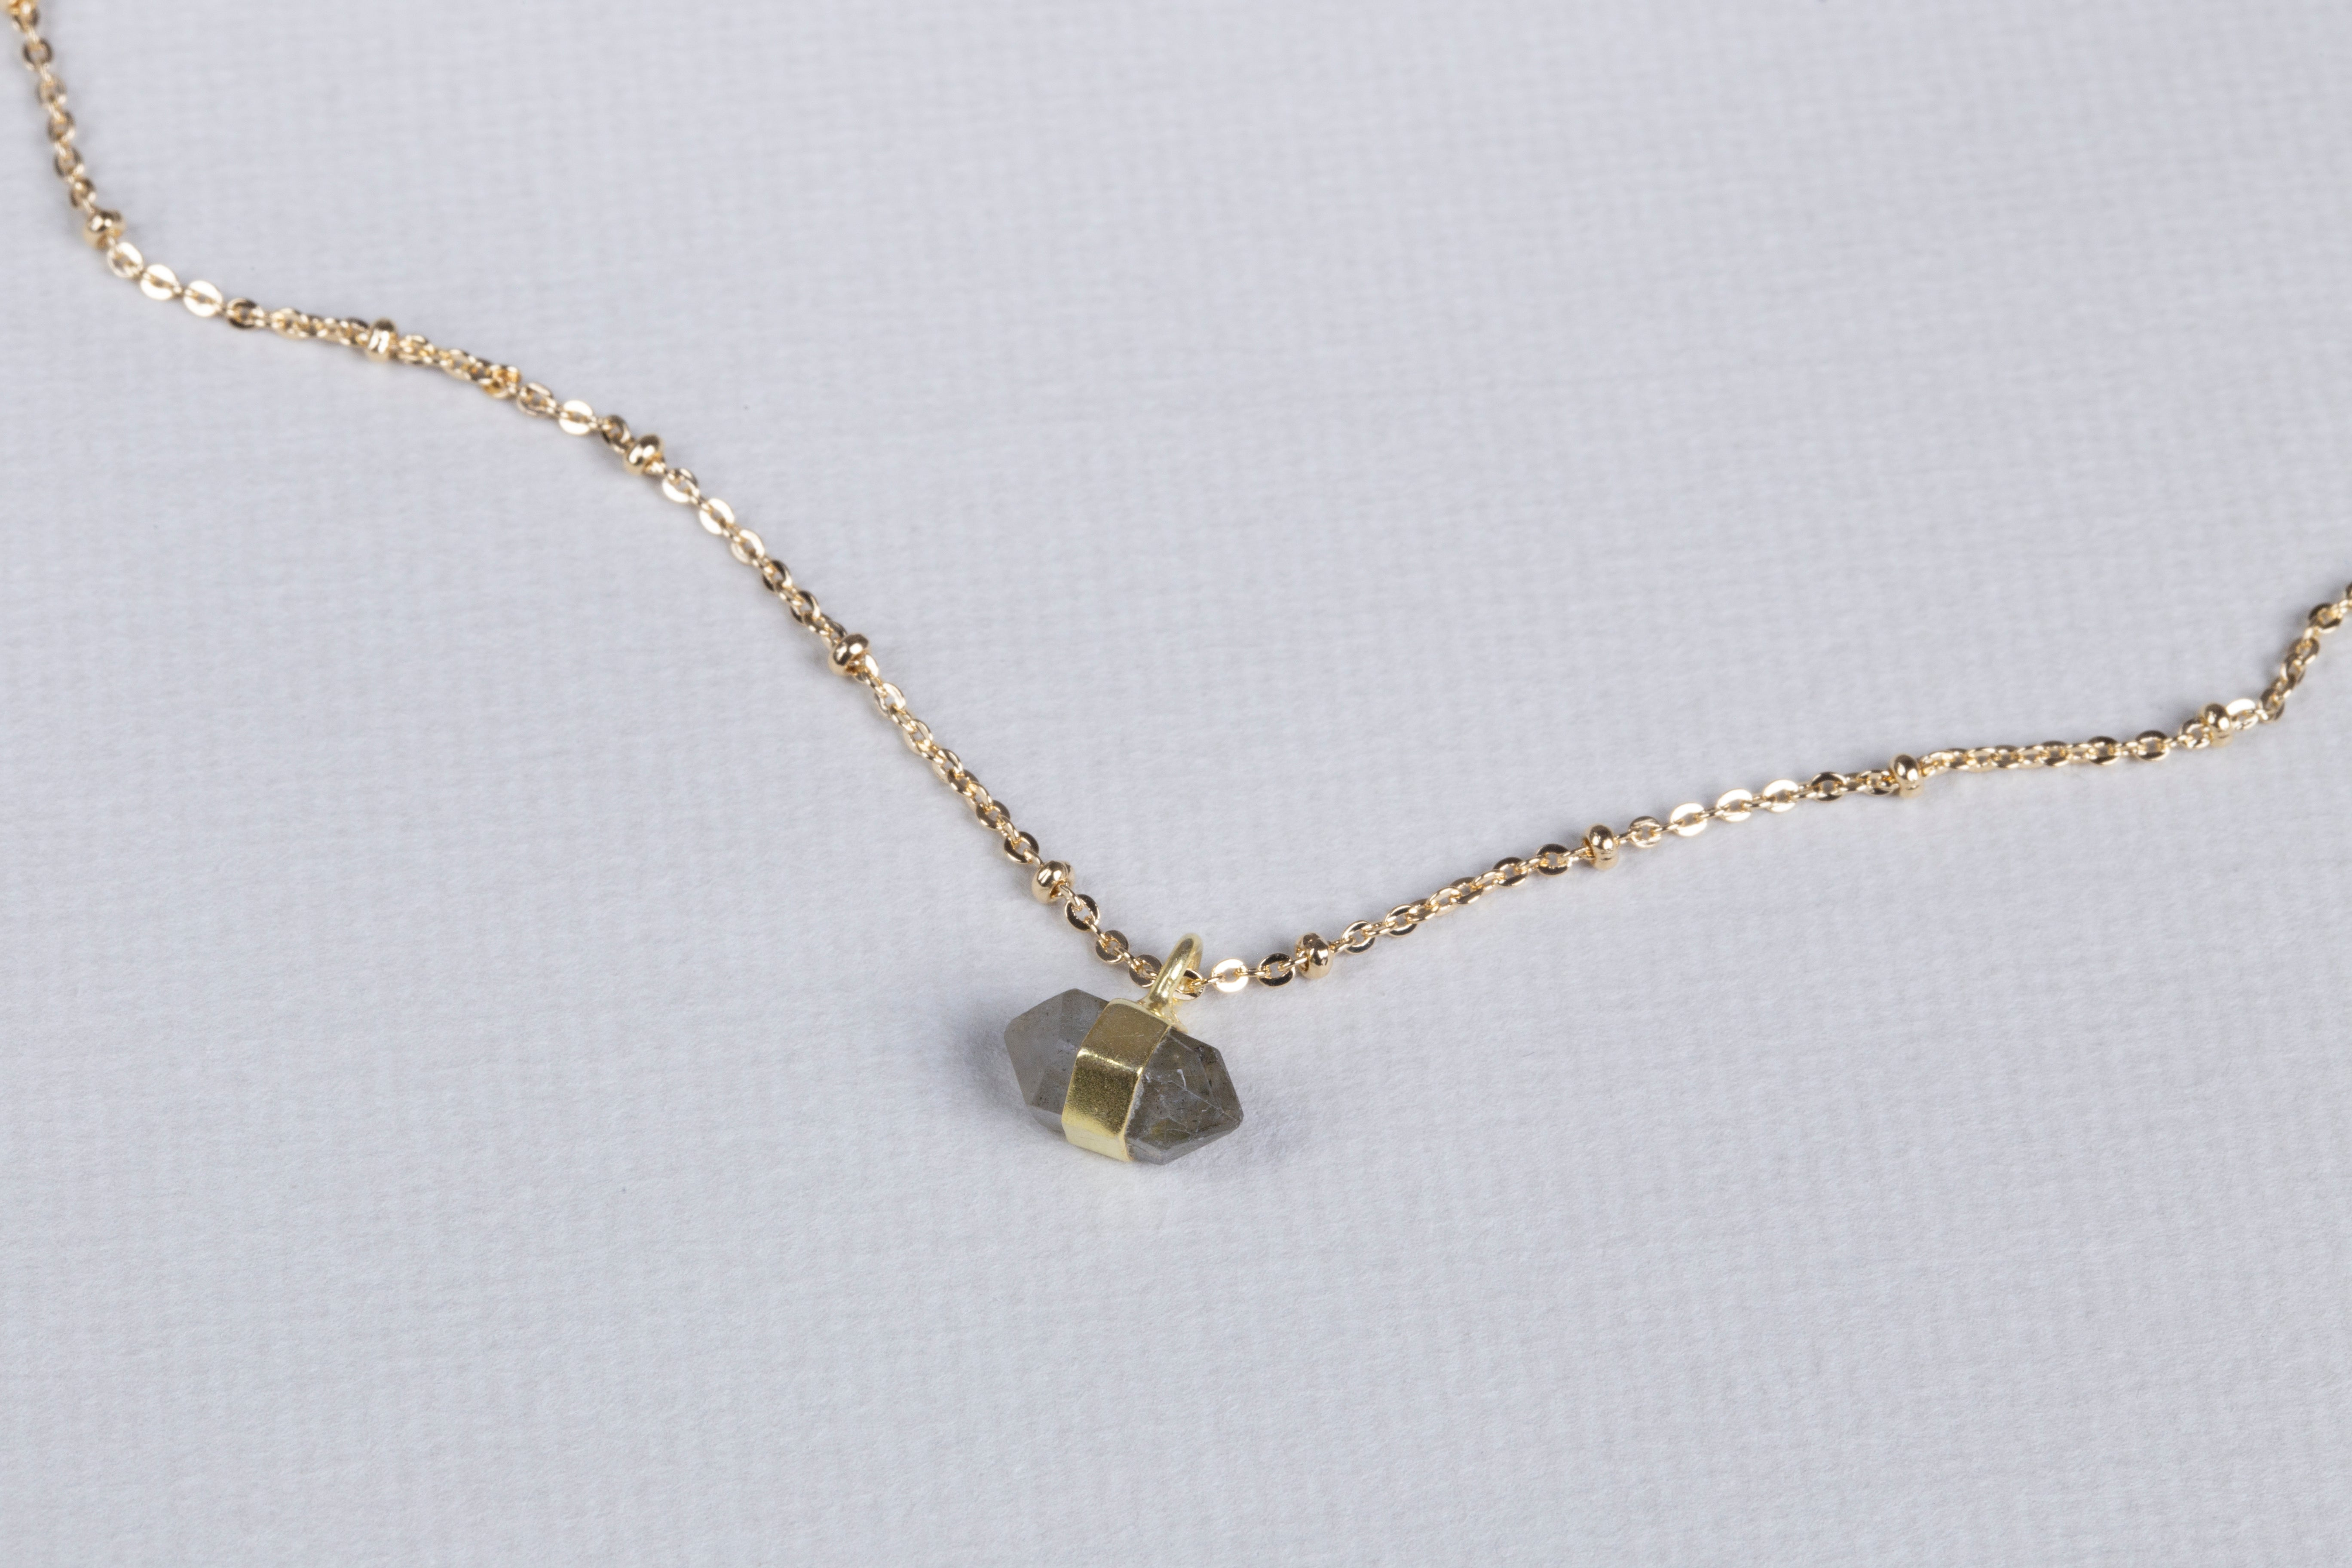 Gold Chain Necklace with Labradorite